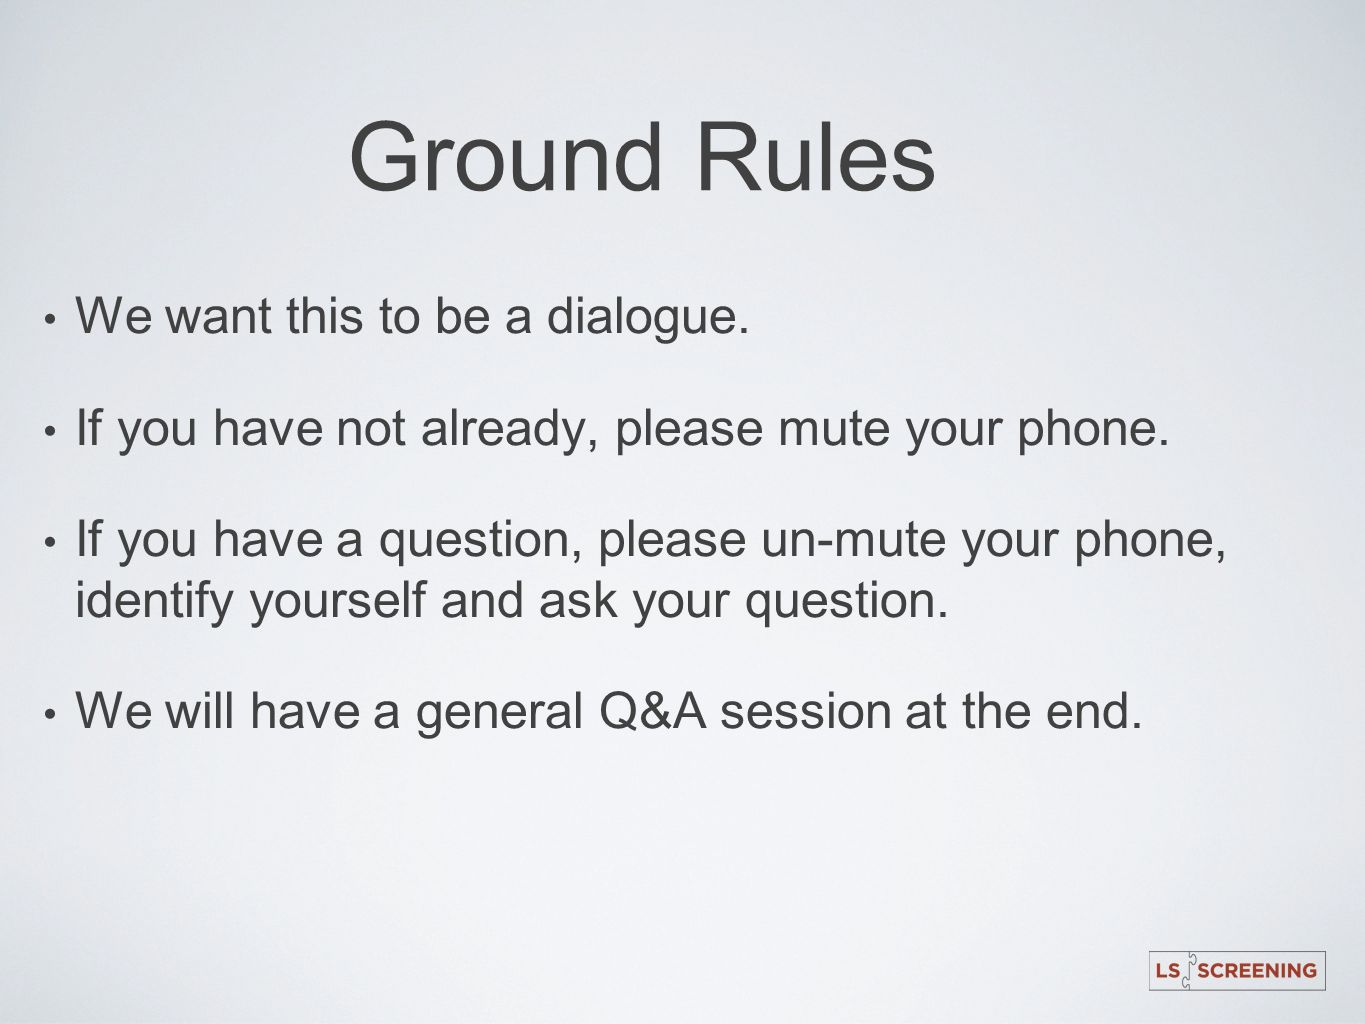 Ground Rules We want this to be a dialogue. If you have not already, please mute your phone. If you have a question, please un-mute your phone, identi